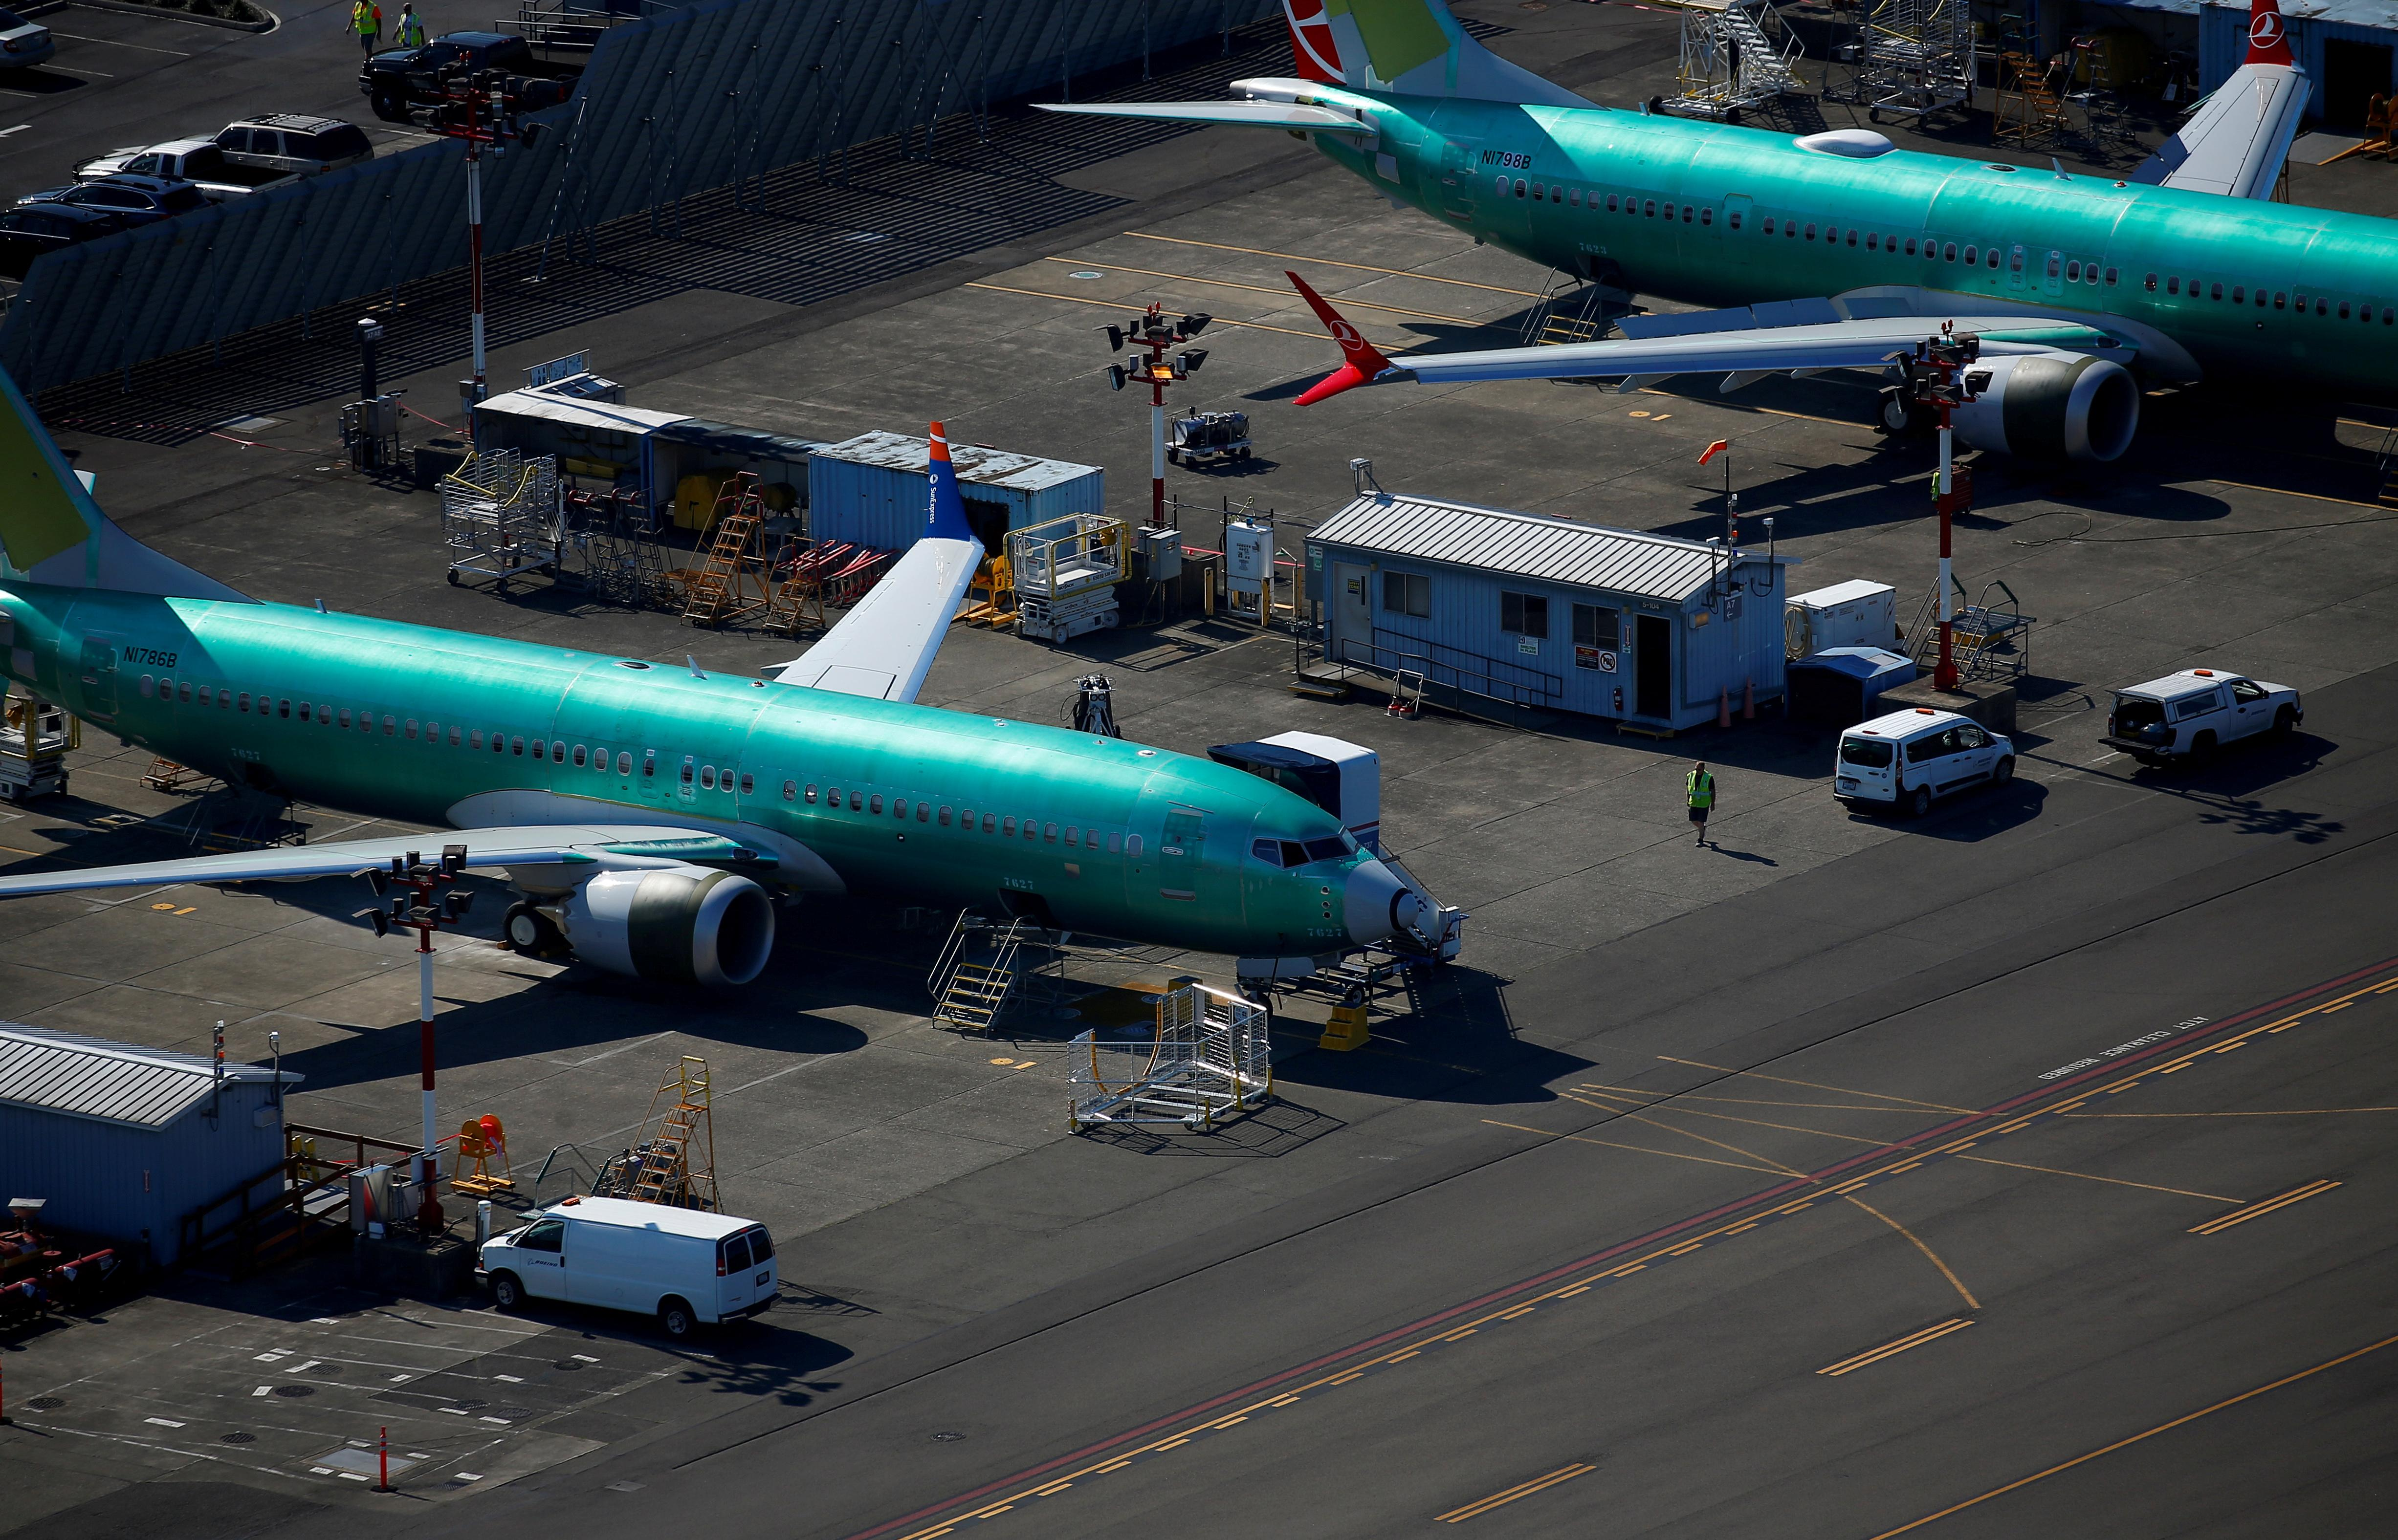 A worker walks past unpainted Boeing 737 MAX aircraft seen parked in an aerial photo at Renton Municipal Airport near the Boeing Renton facility in Renton, Washington, U.S. July 1, 2019. Lindsey Wasson